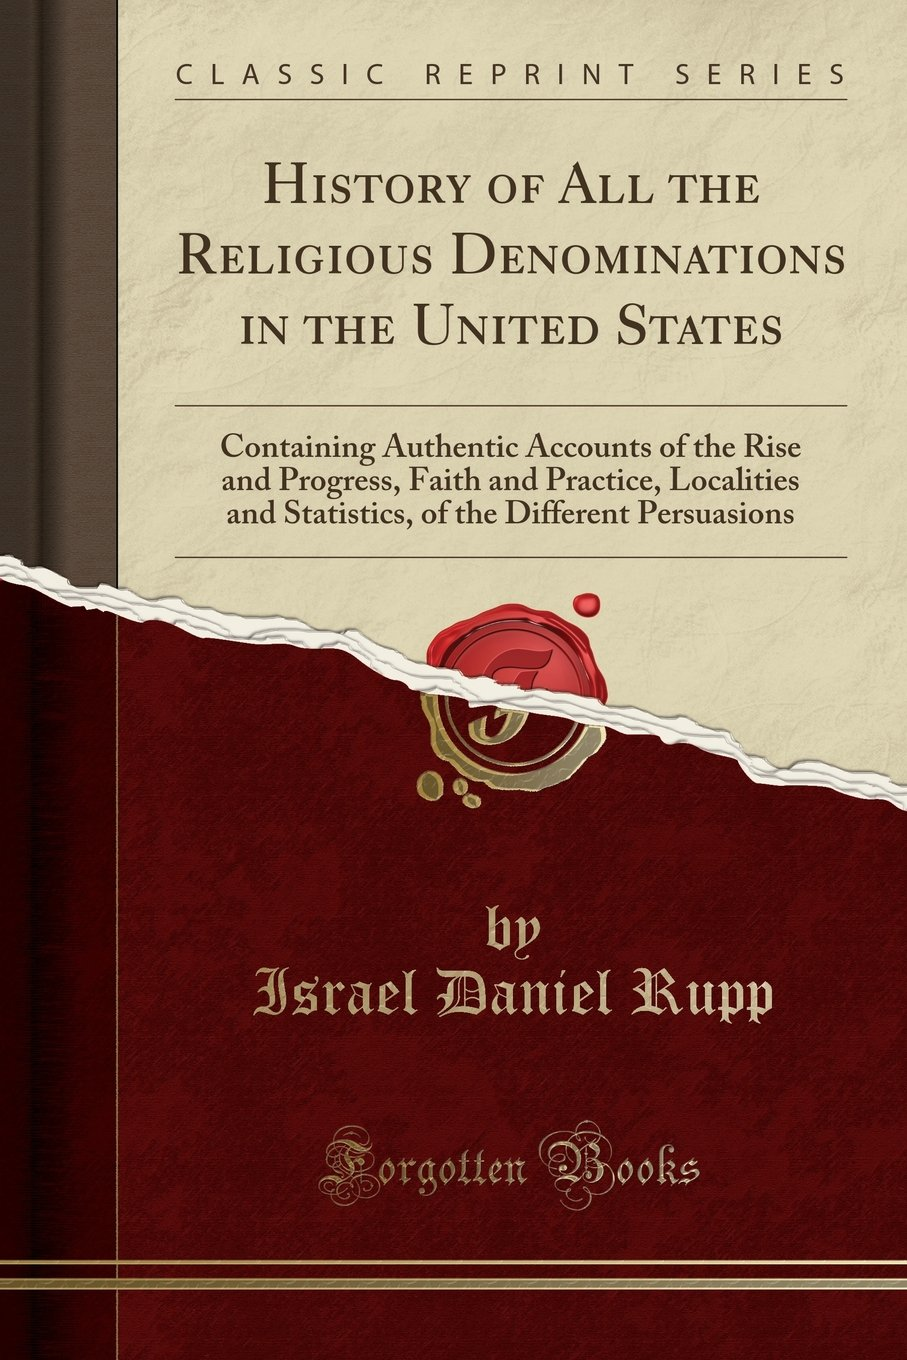 Download History of All the Religious Denominations in the United States: Containing Authentic Accounts of the Rise and Progress, Faith and Practice, ... the Different Persuasions (Classic Reprint) ebook